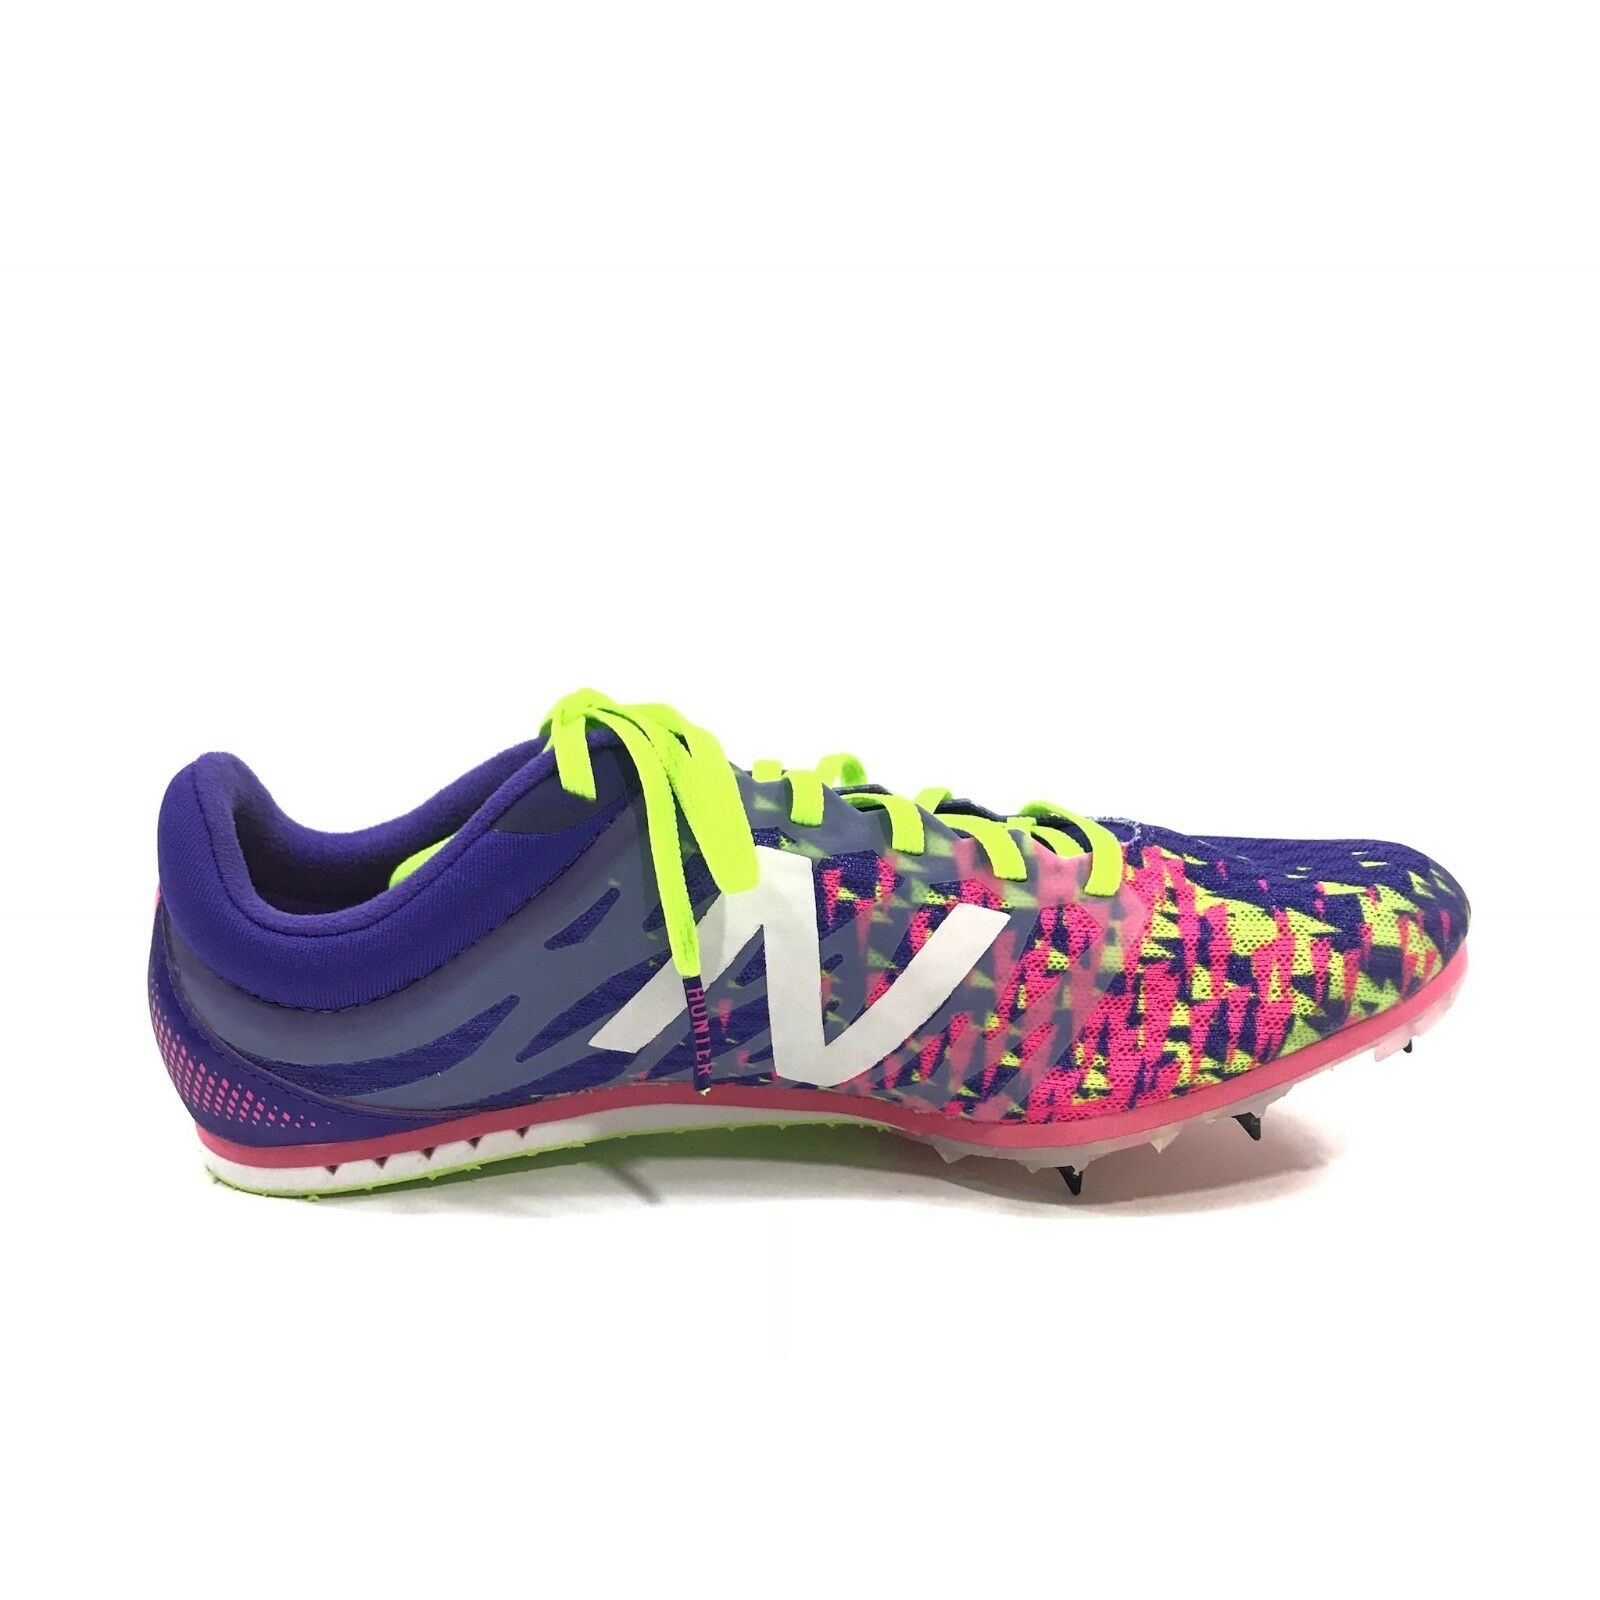 New Balance WMNS Mid Distance Distance Distance Track Spikes shoes Purple Pink Green MD500P5 Sizes 275c9f